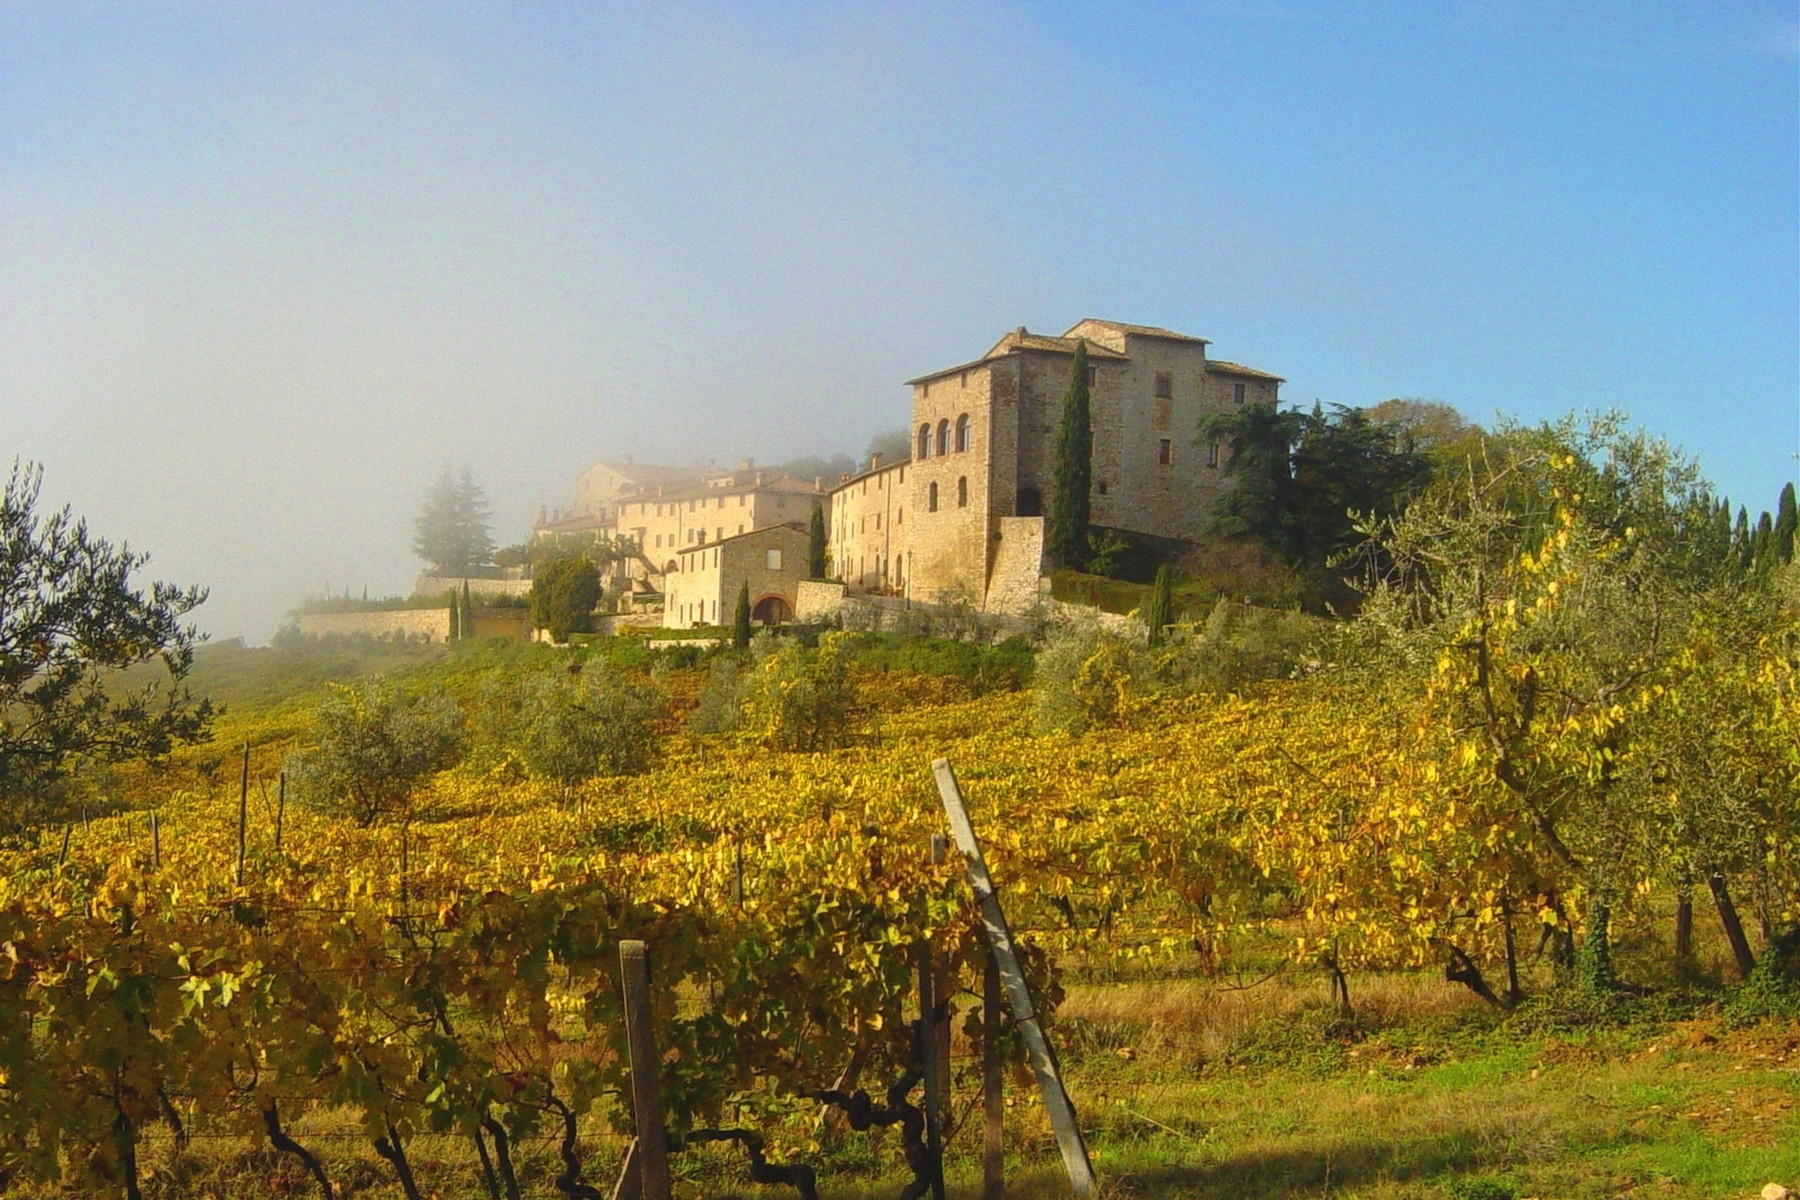 Single Family Home for Sale at Historic castle in Chianti with vineyard Gaiole In Chianti, 53013 Italy